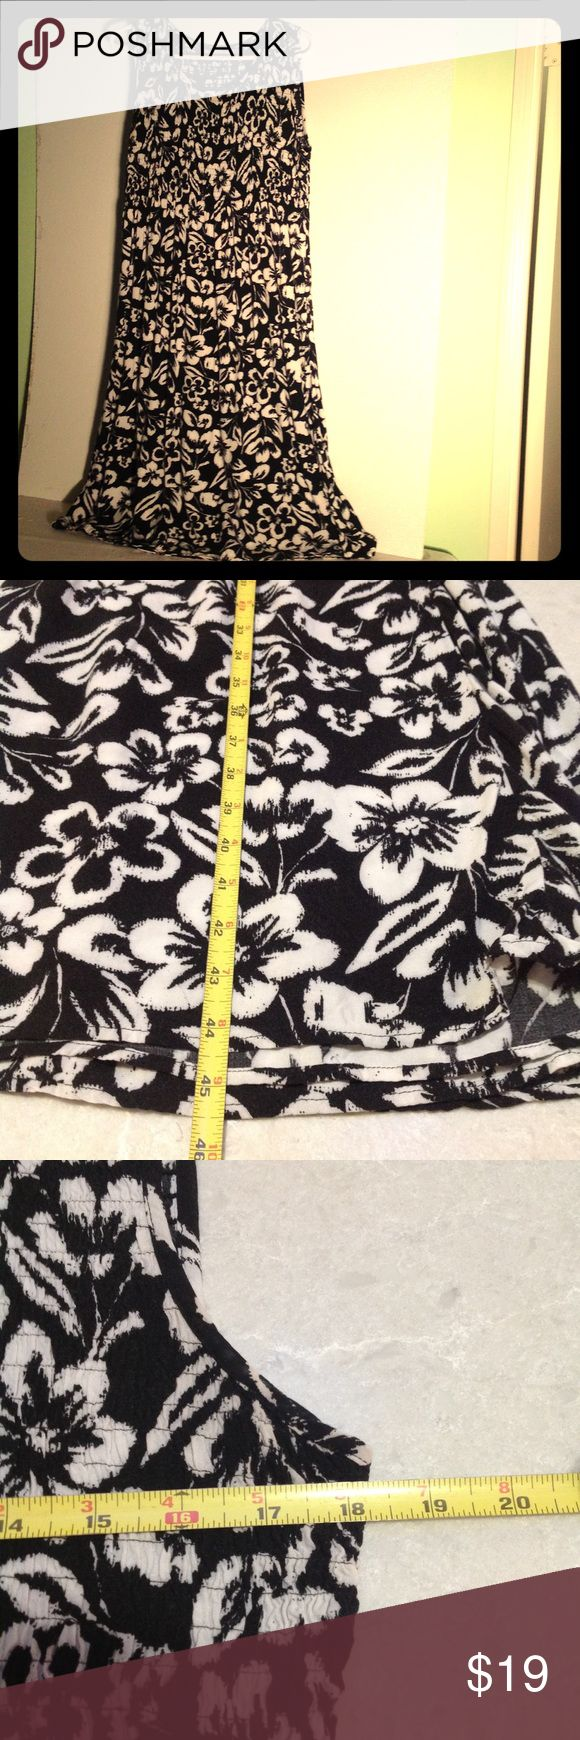 """Tropical print sleeveless dress Striking XL black and cream tropical floral dress. The bodice is smocked so it has great give and the skirt is softly pleated (because of the shocking). So comfortable and easy to wear. This will be a """"go to"""" in your closet. croft & barrow Dresses Midi"""